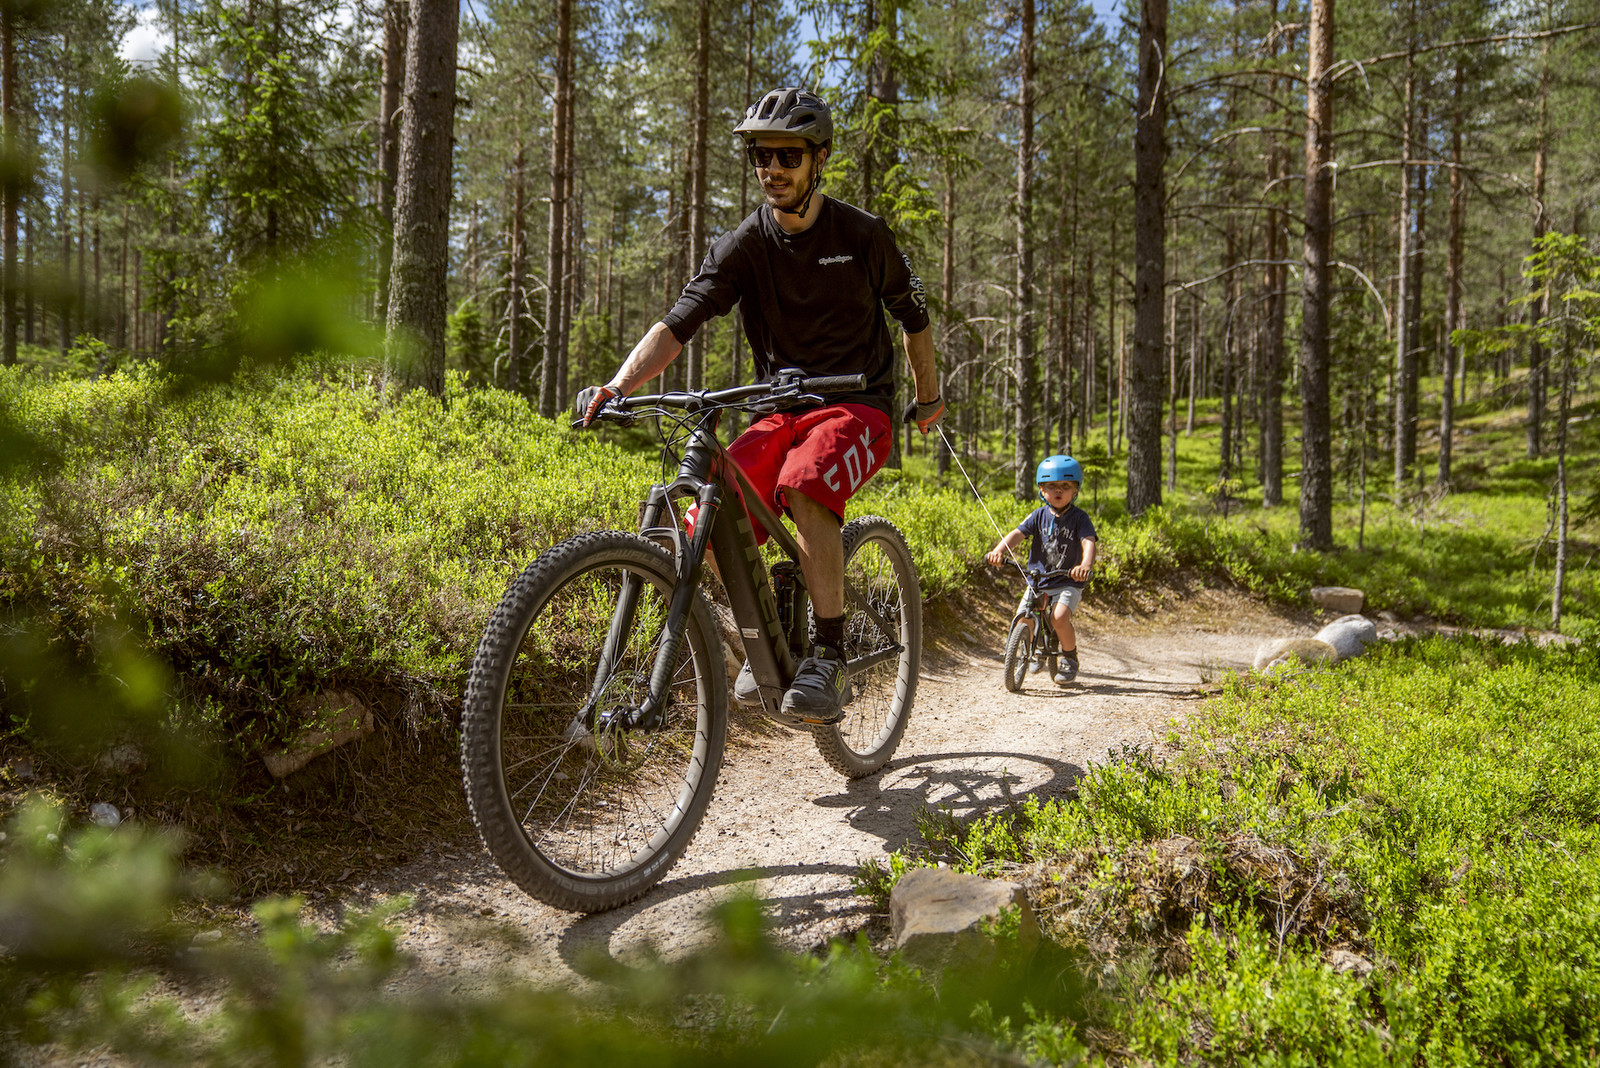 On the leash, ready, go – Kidreel ensures bike fun for the whole family!